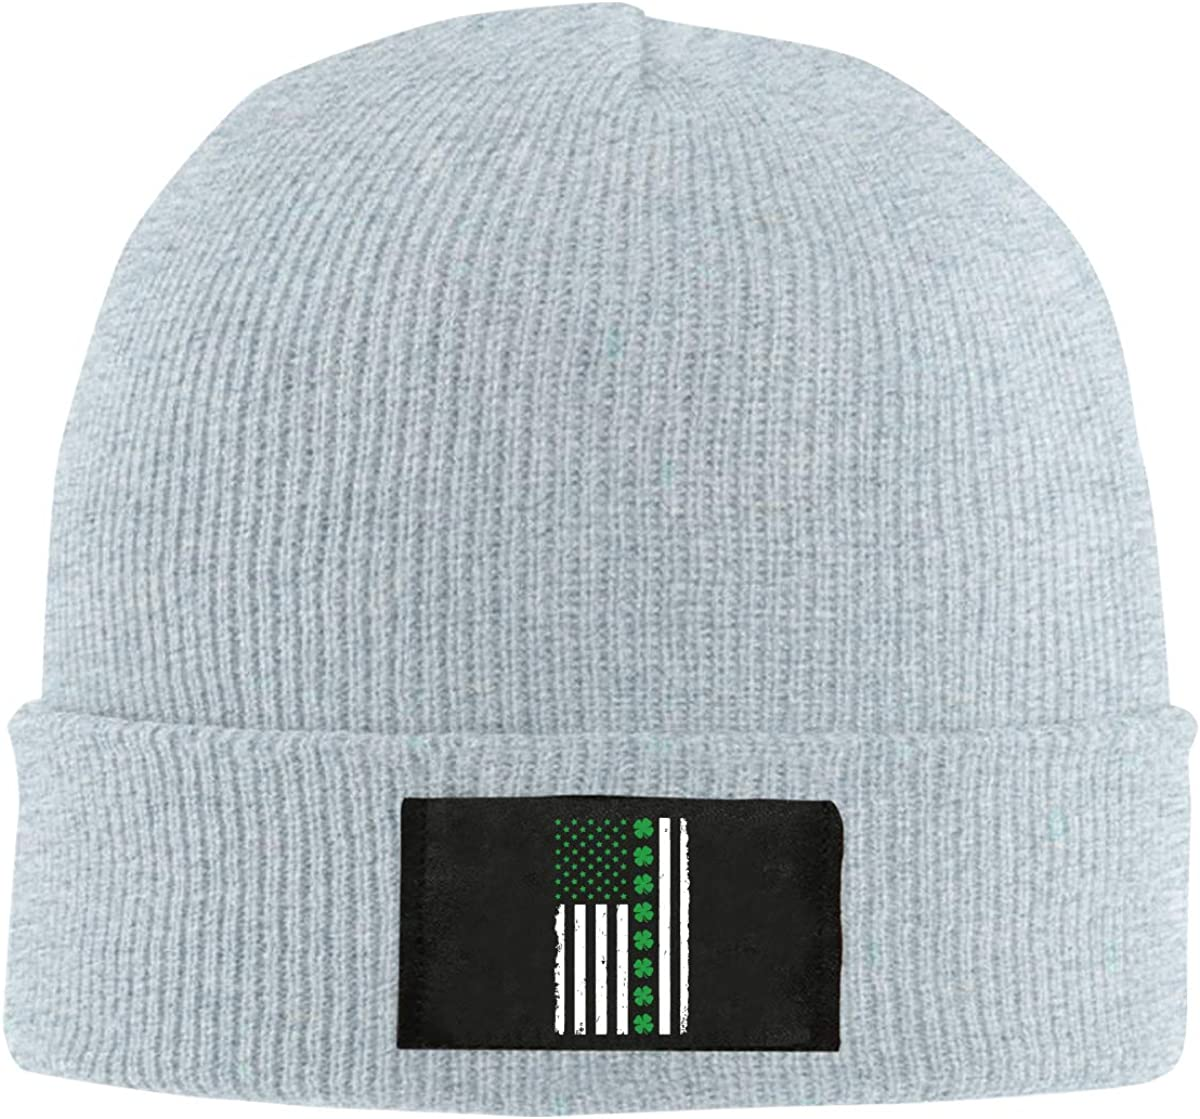 BF5Y6z/&MA Mens and Womens Big Irish American Flag Knitted Hat 100/% Acrylic Winter Beanies Cap